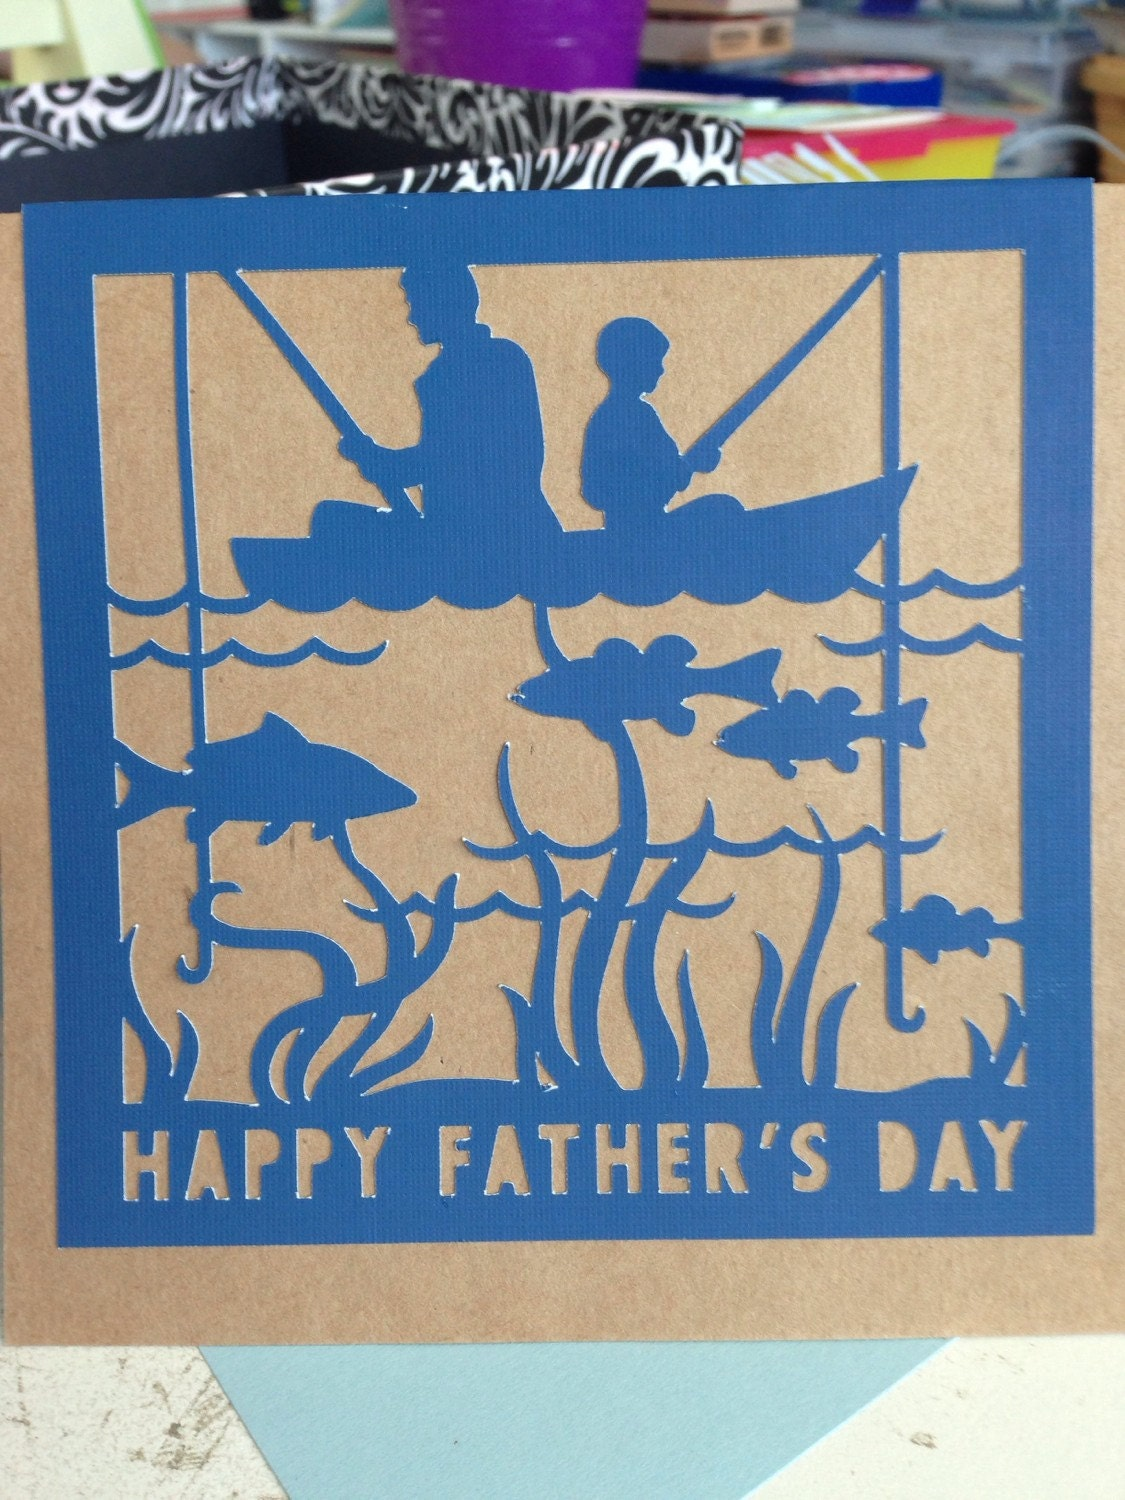 Fathers Day Card Fishing Father Son by PaperMoments on Etsy